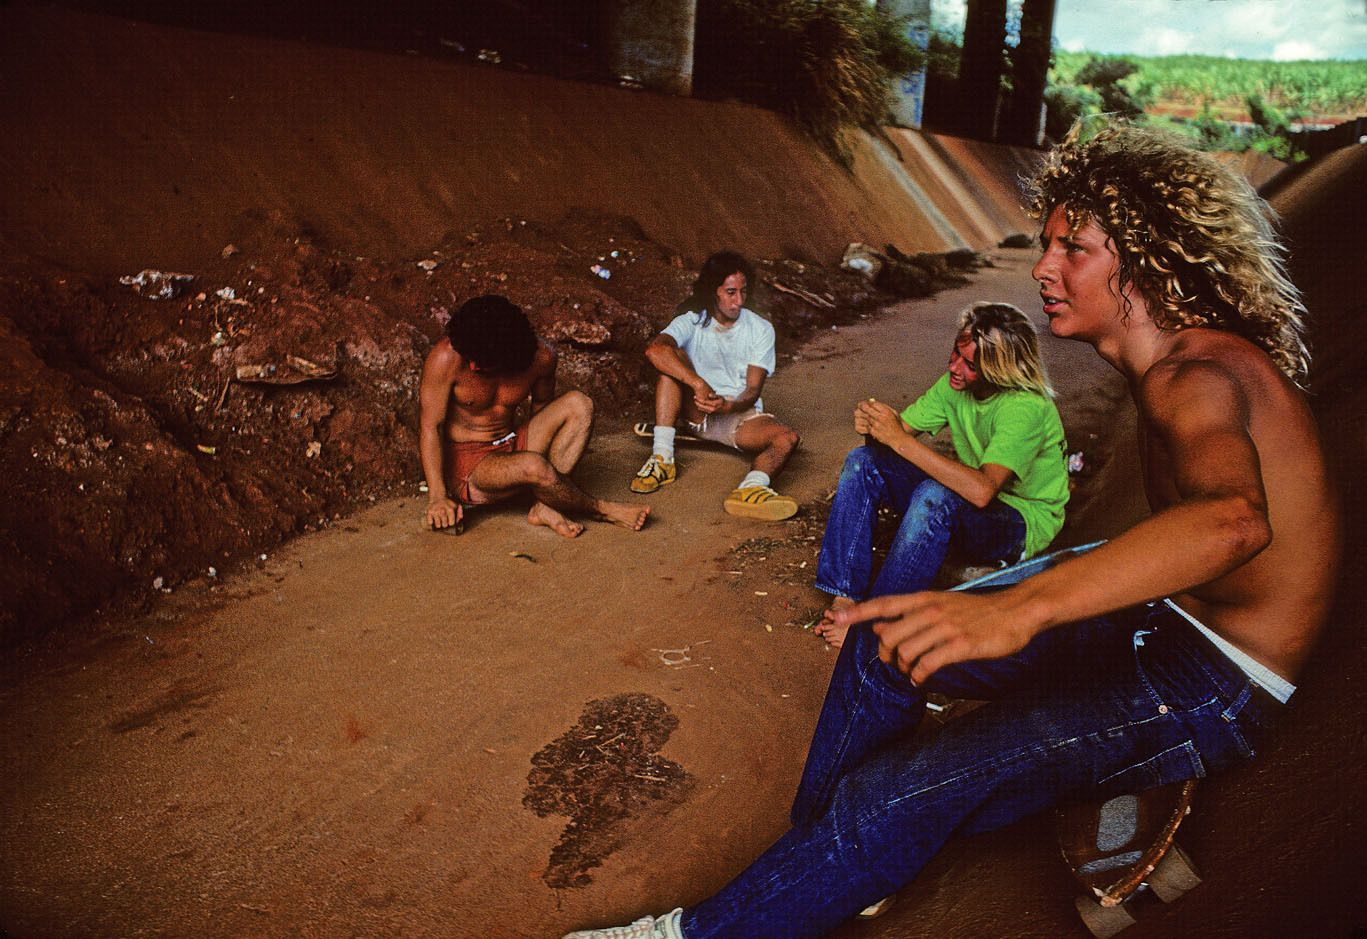 UNIDENTIFIED, ROY JAMESON, , JAY ADAMS, TONY ALVA, WALLOS, HONOLULU, HI. 1975.